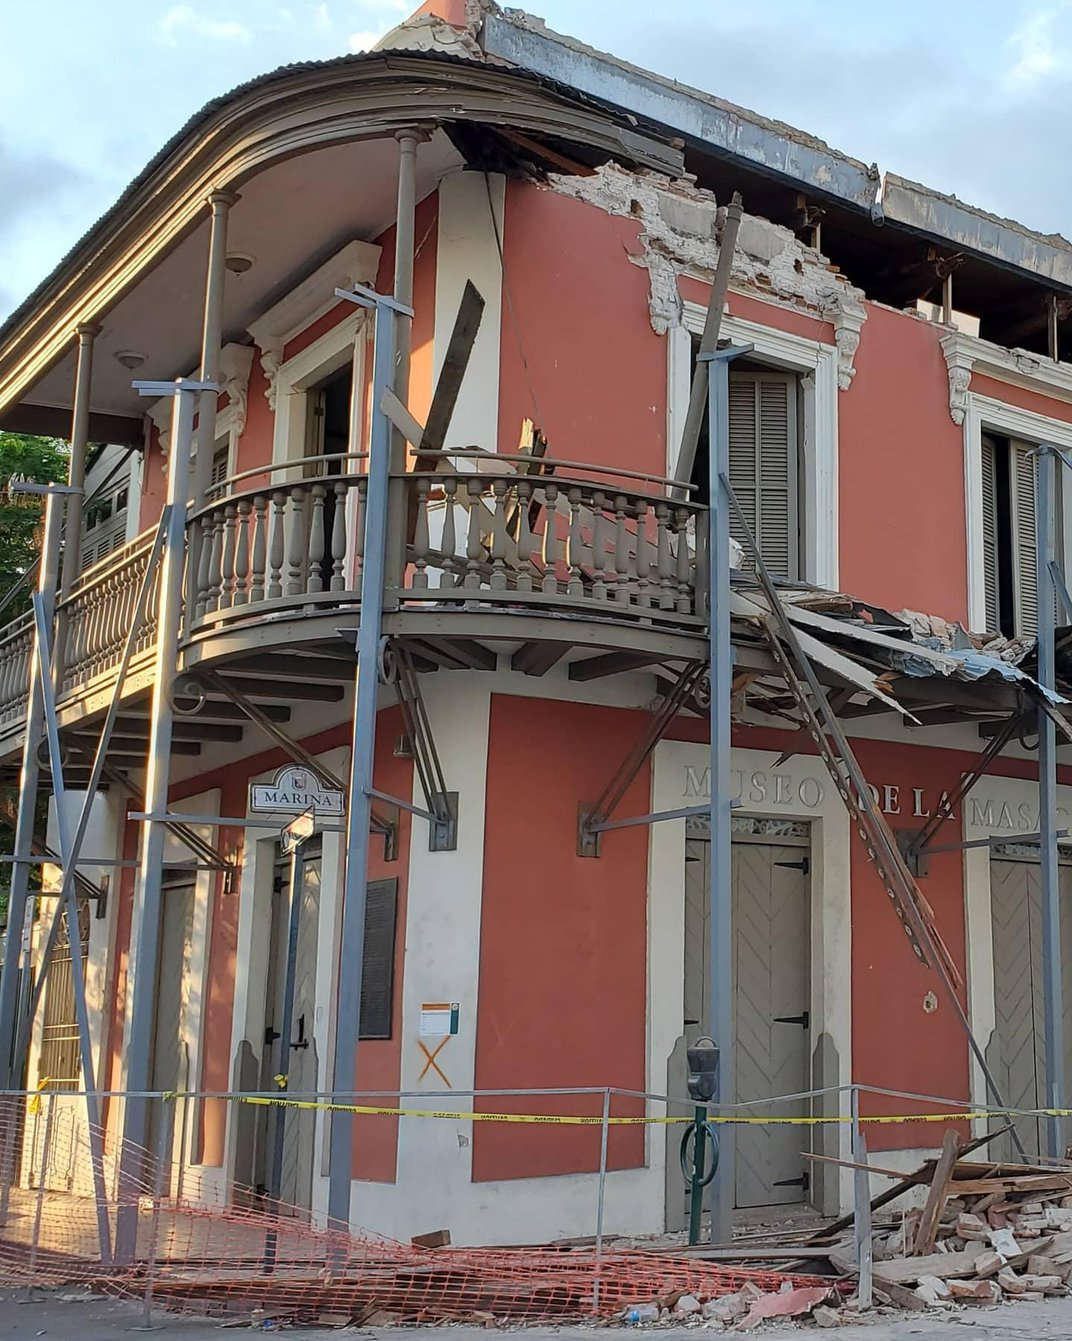 5.4-Magnitude Earthquake Damages Puerto Rican Museums